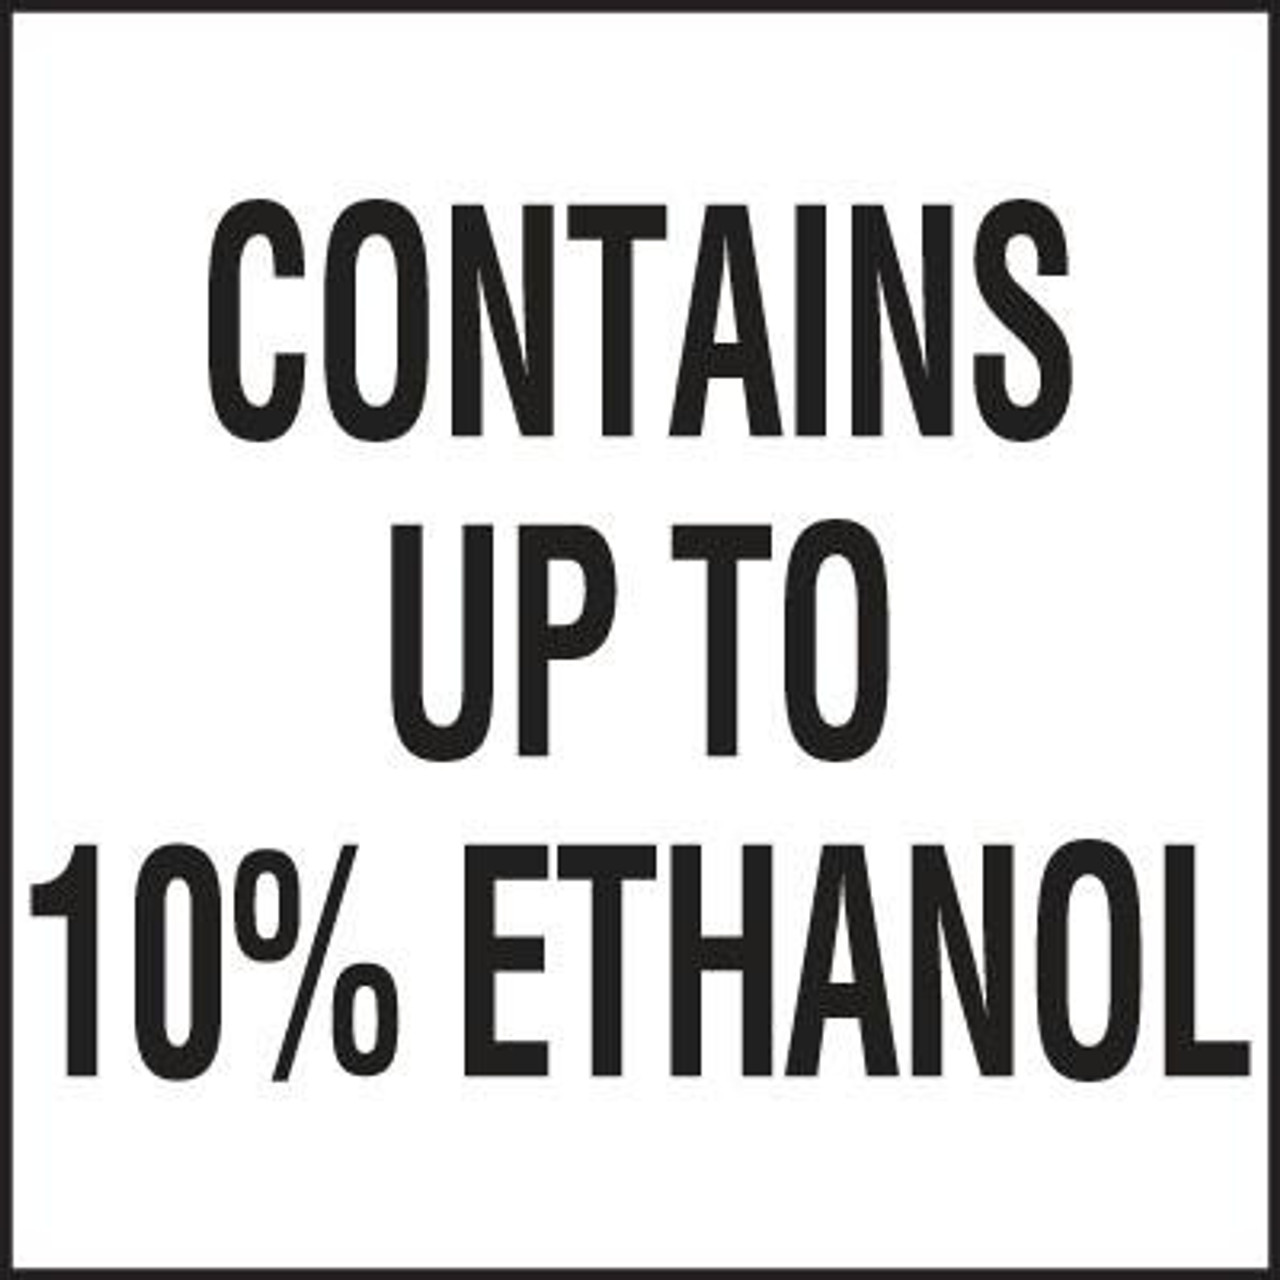 "PID-172C - 3"" x 3"" Decal - Contains Up to 10% Ethanol"